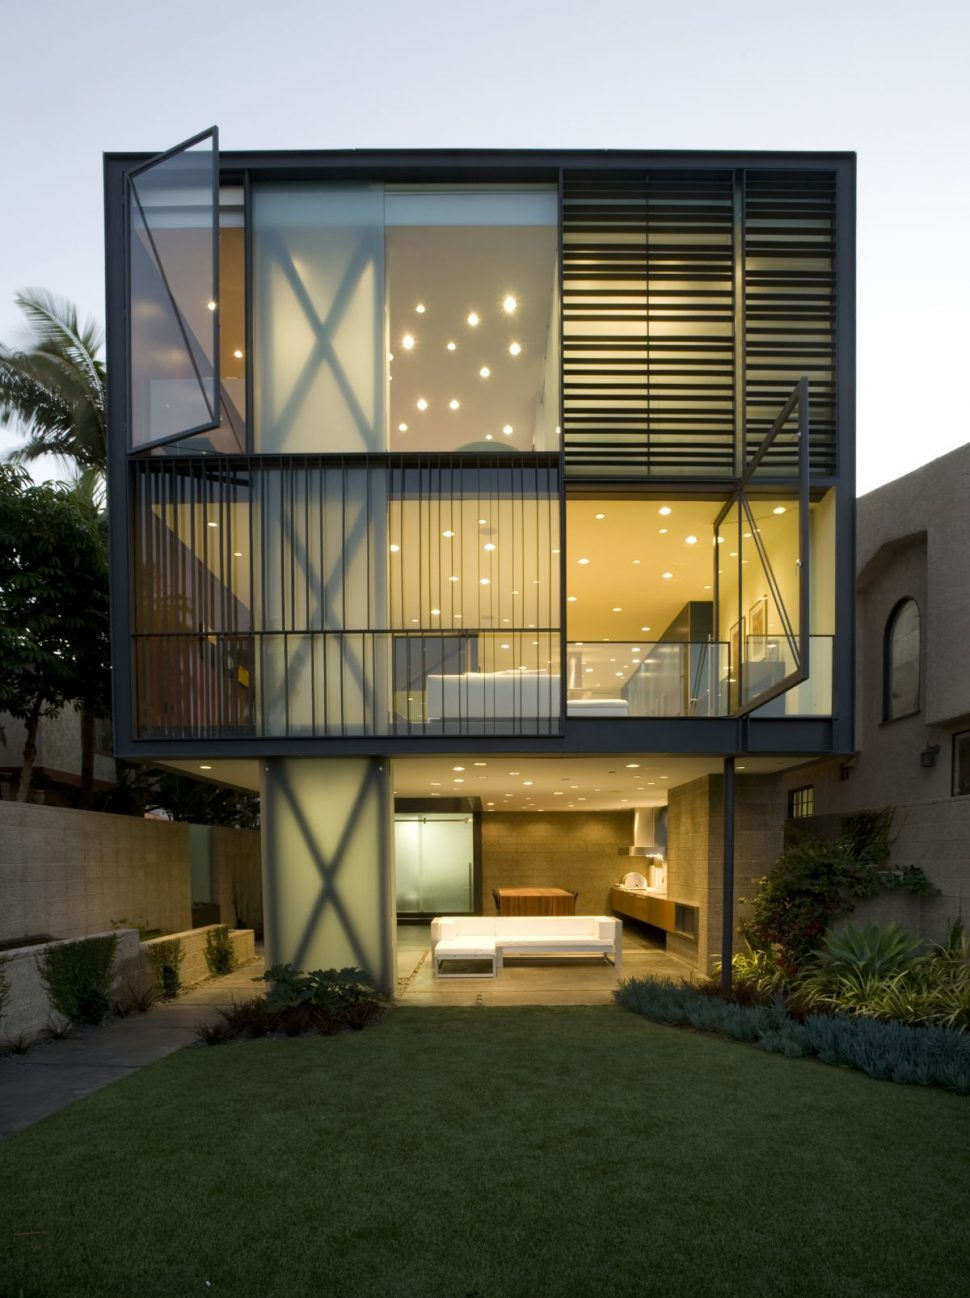 architecture inspiration architecture contemporary three levels plus levels small homes ideas exteriors images minimalist homes 970x1298